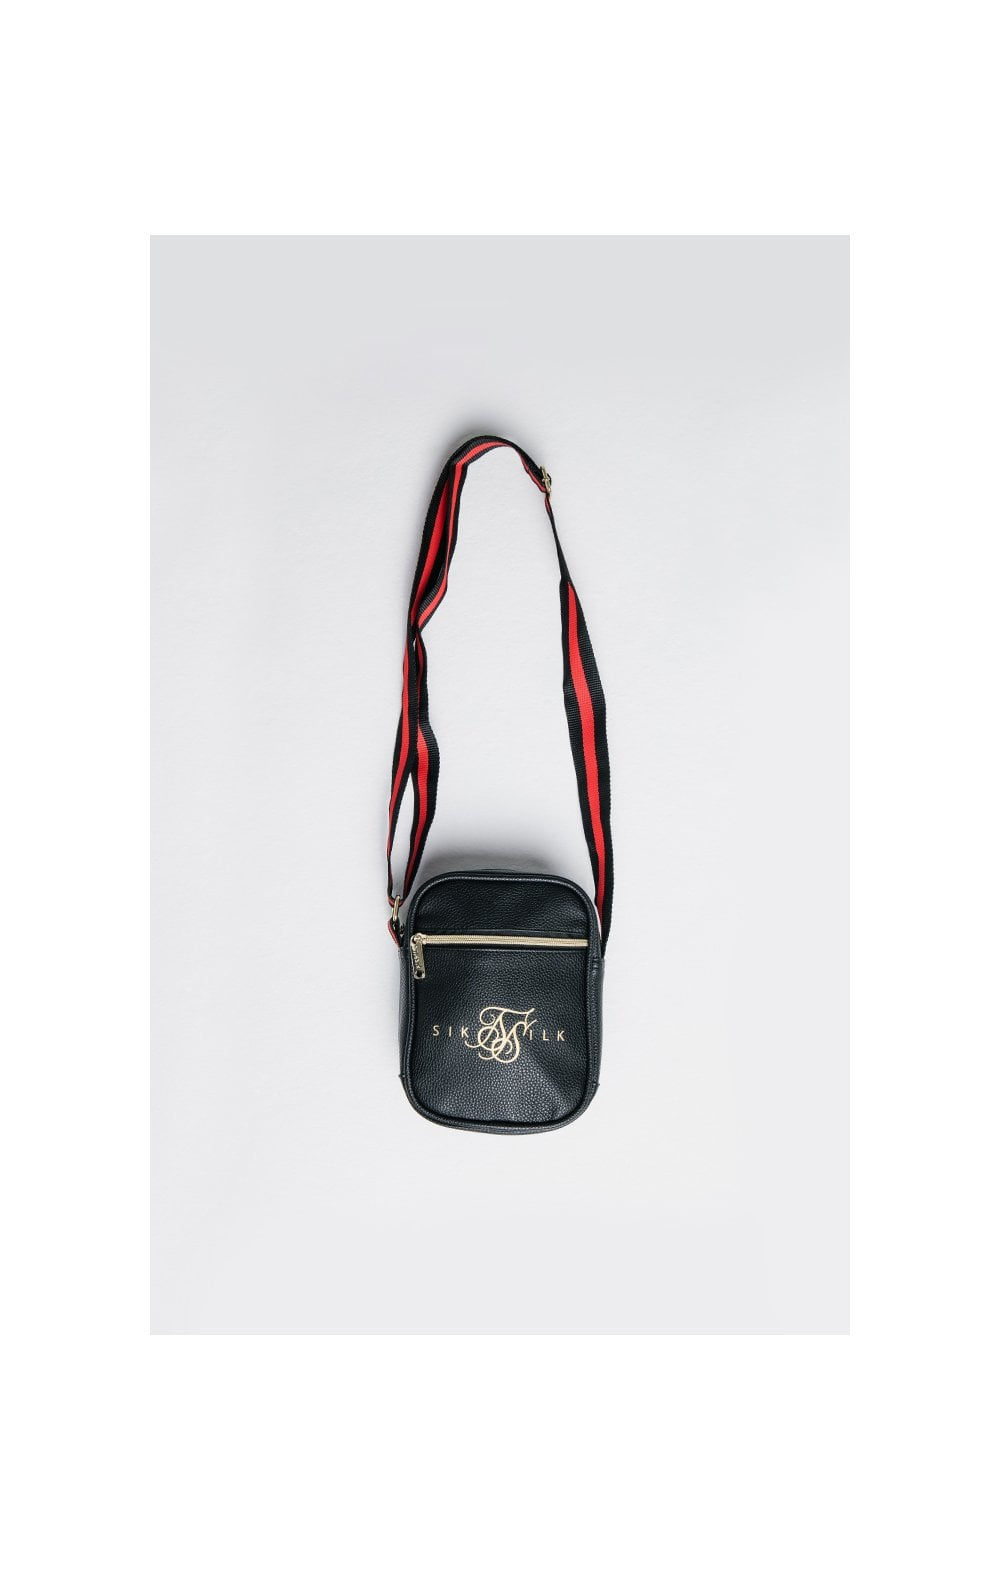 Load image into Gallery viewer, SikSilk Cross Body Bag - Black (4)